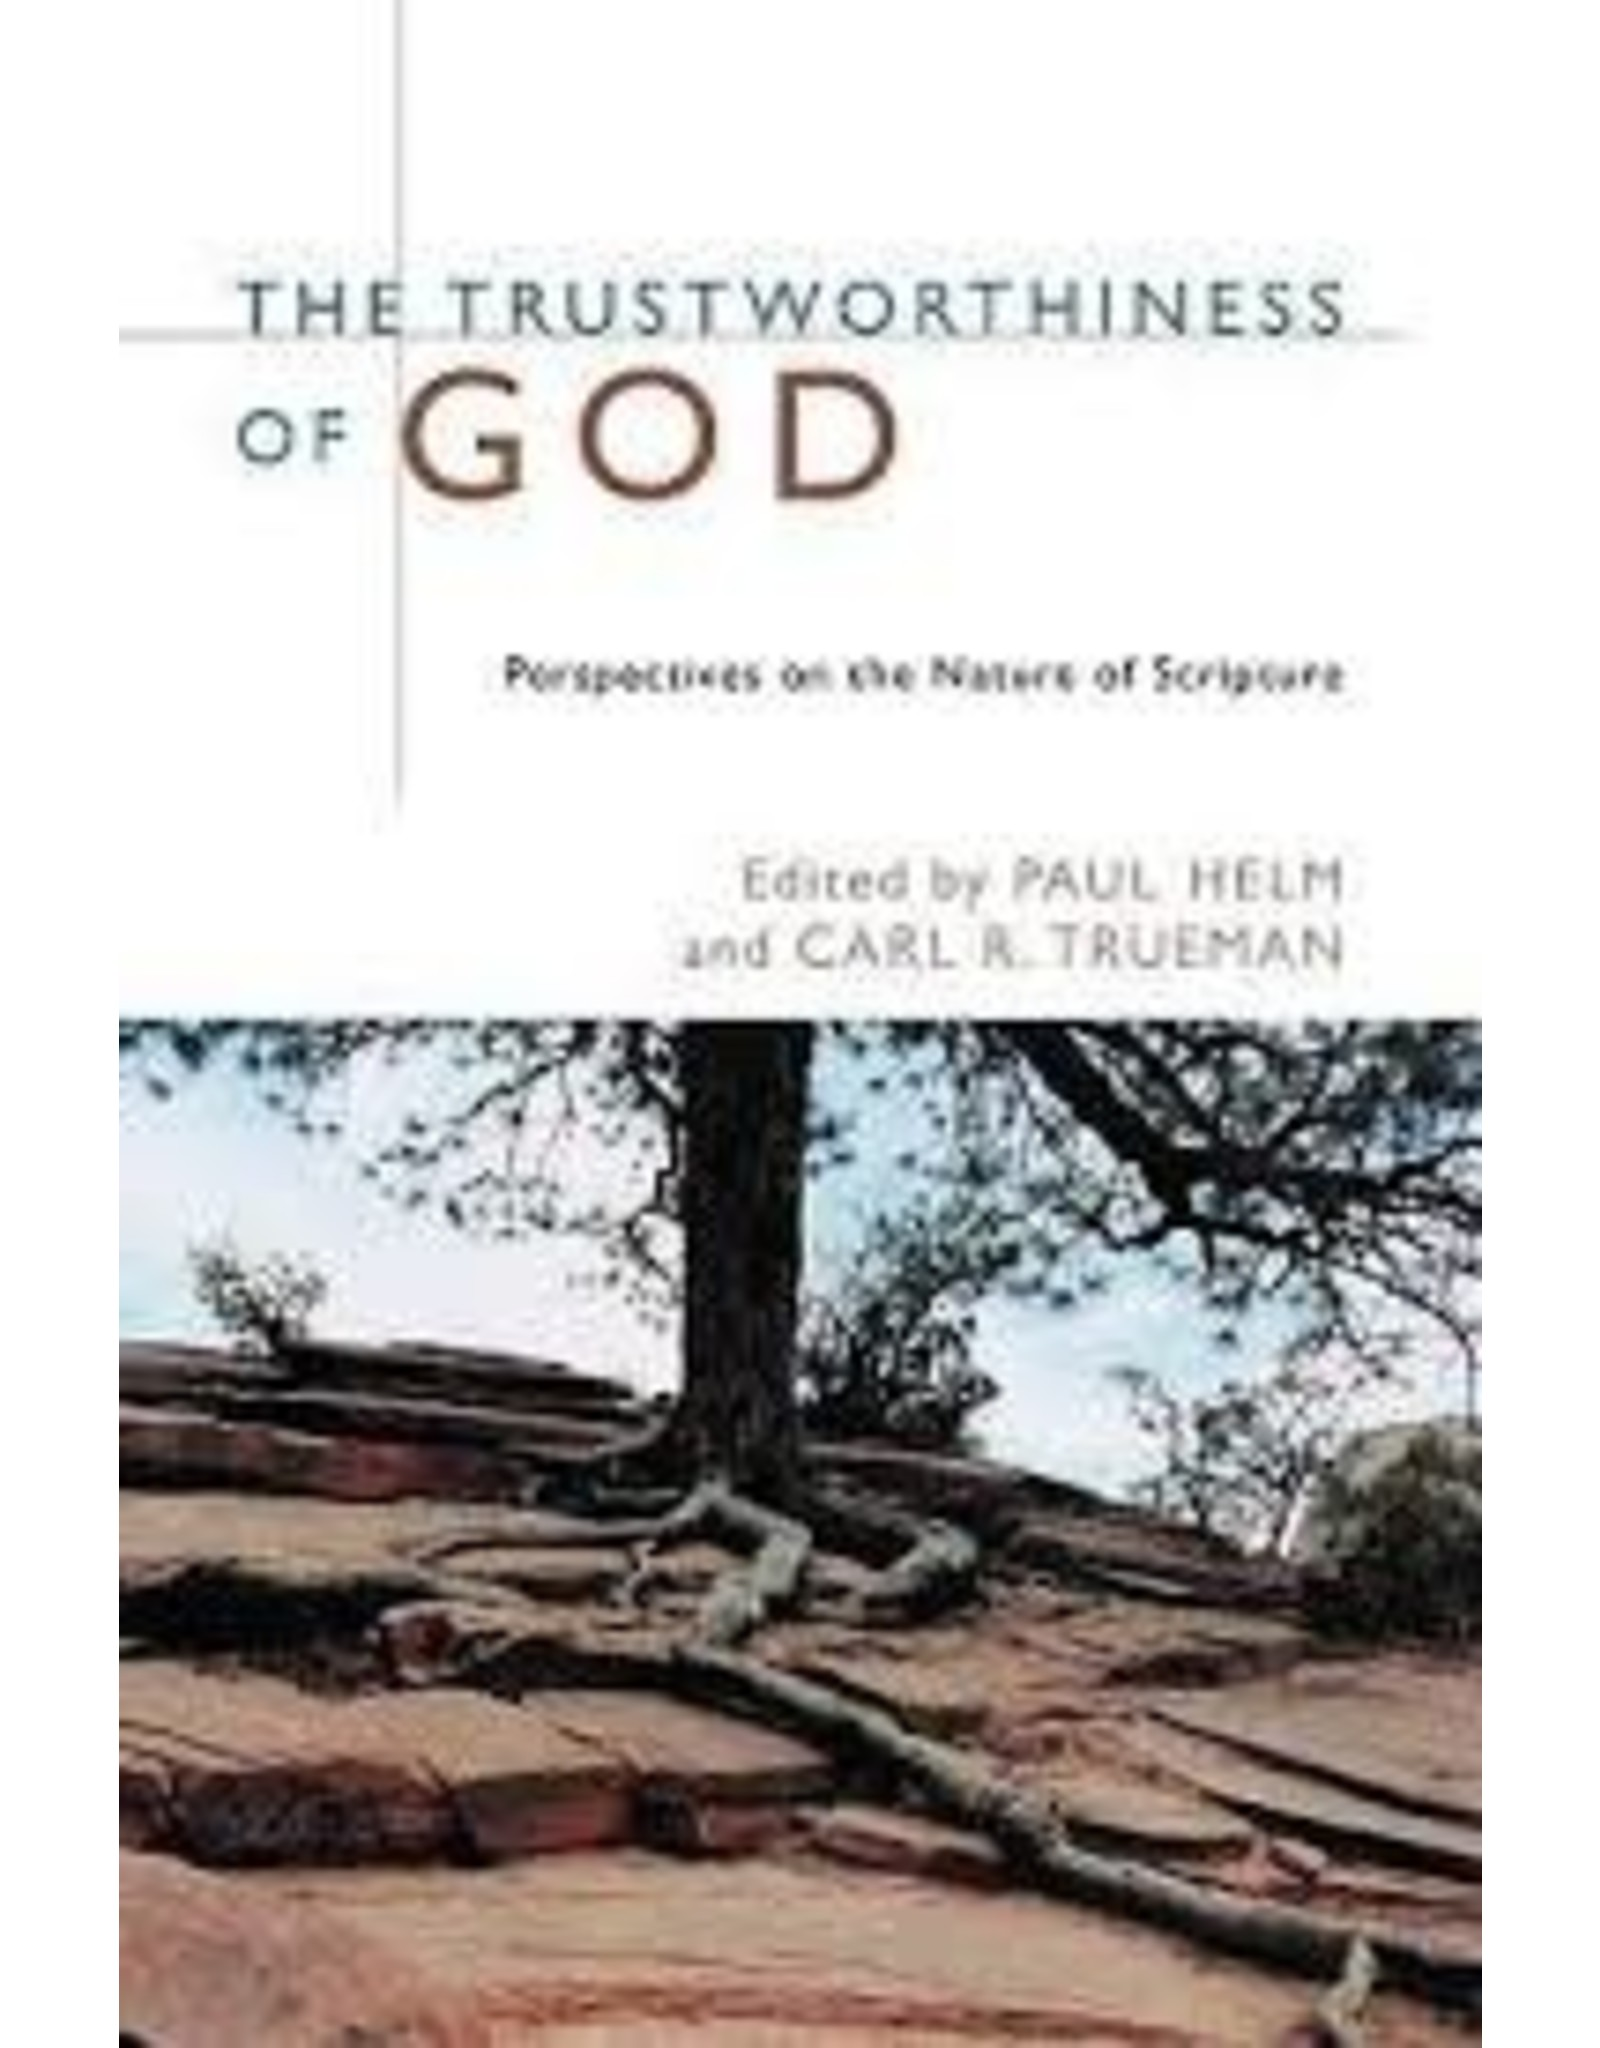 Wm. B. Eerdmans The Trustworthiness of God